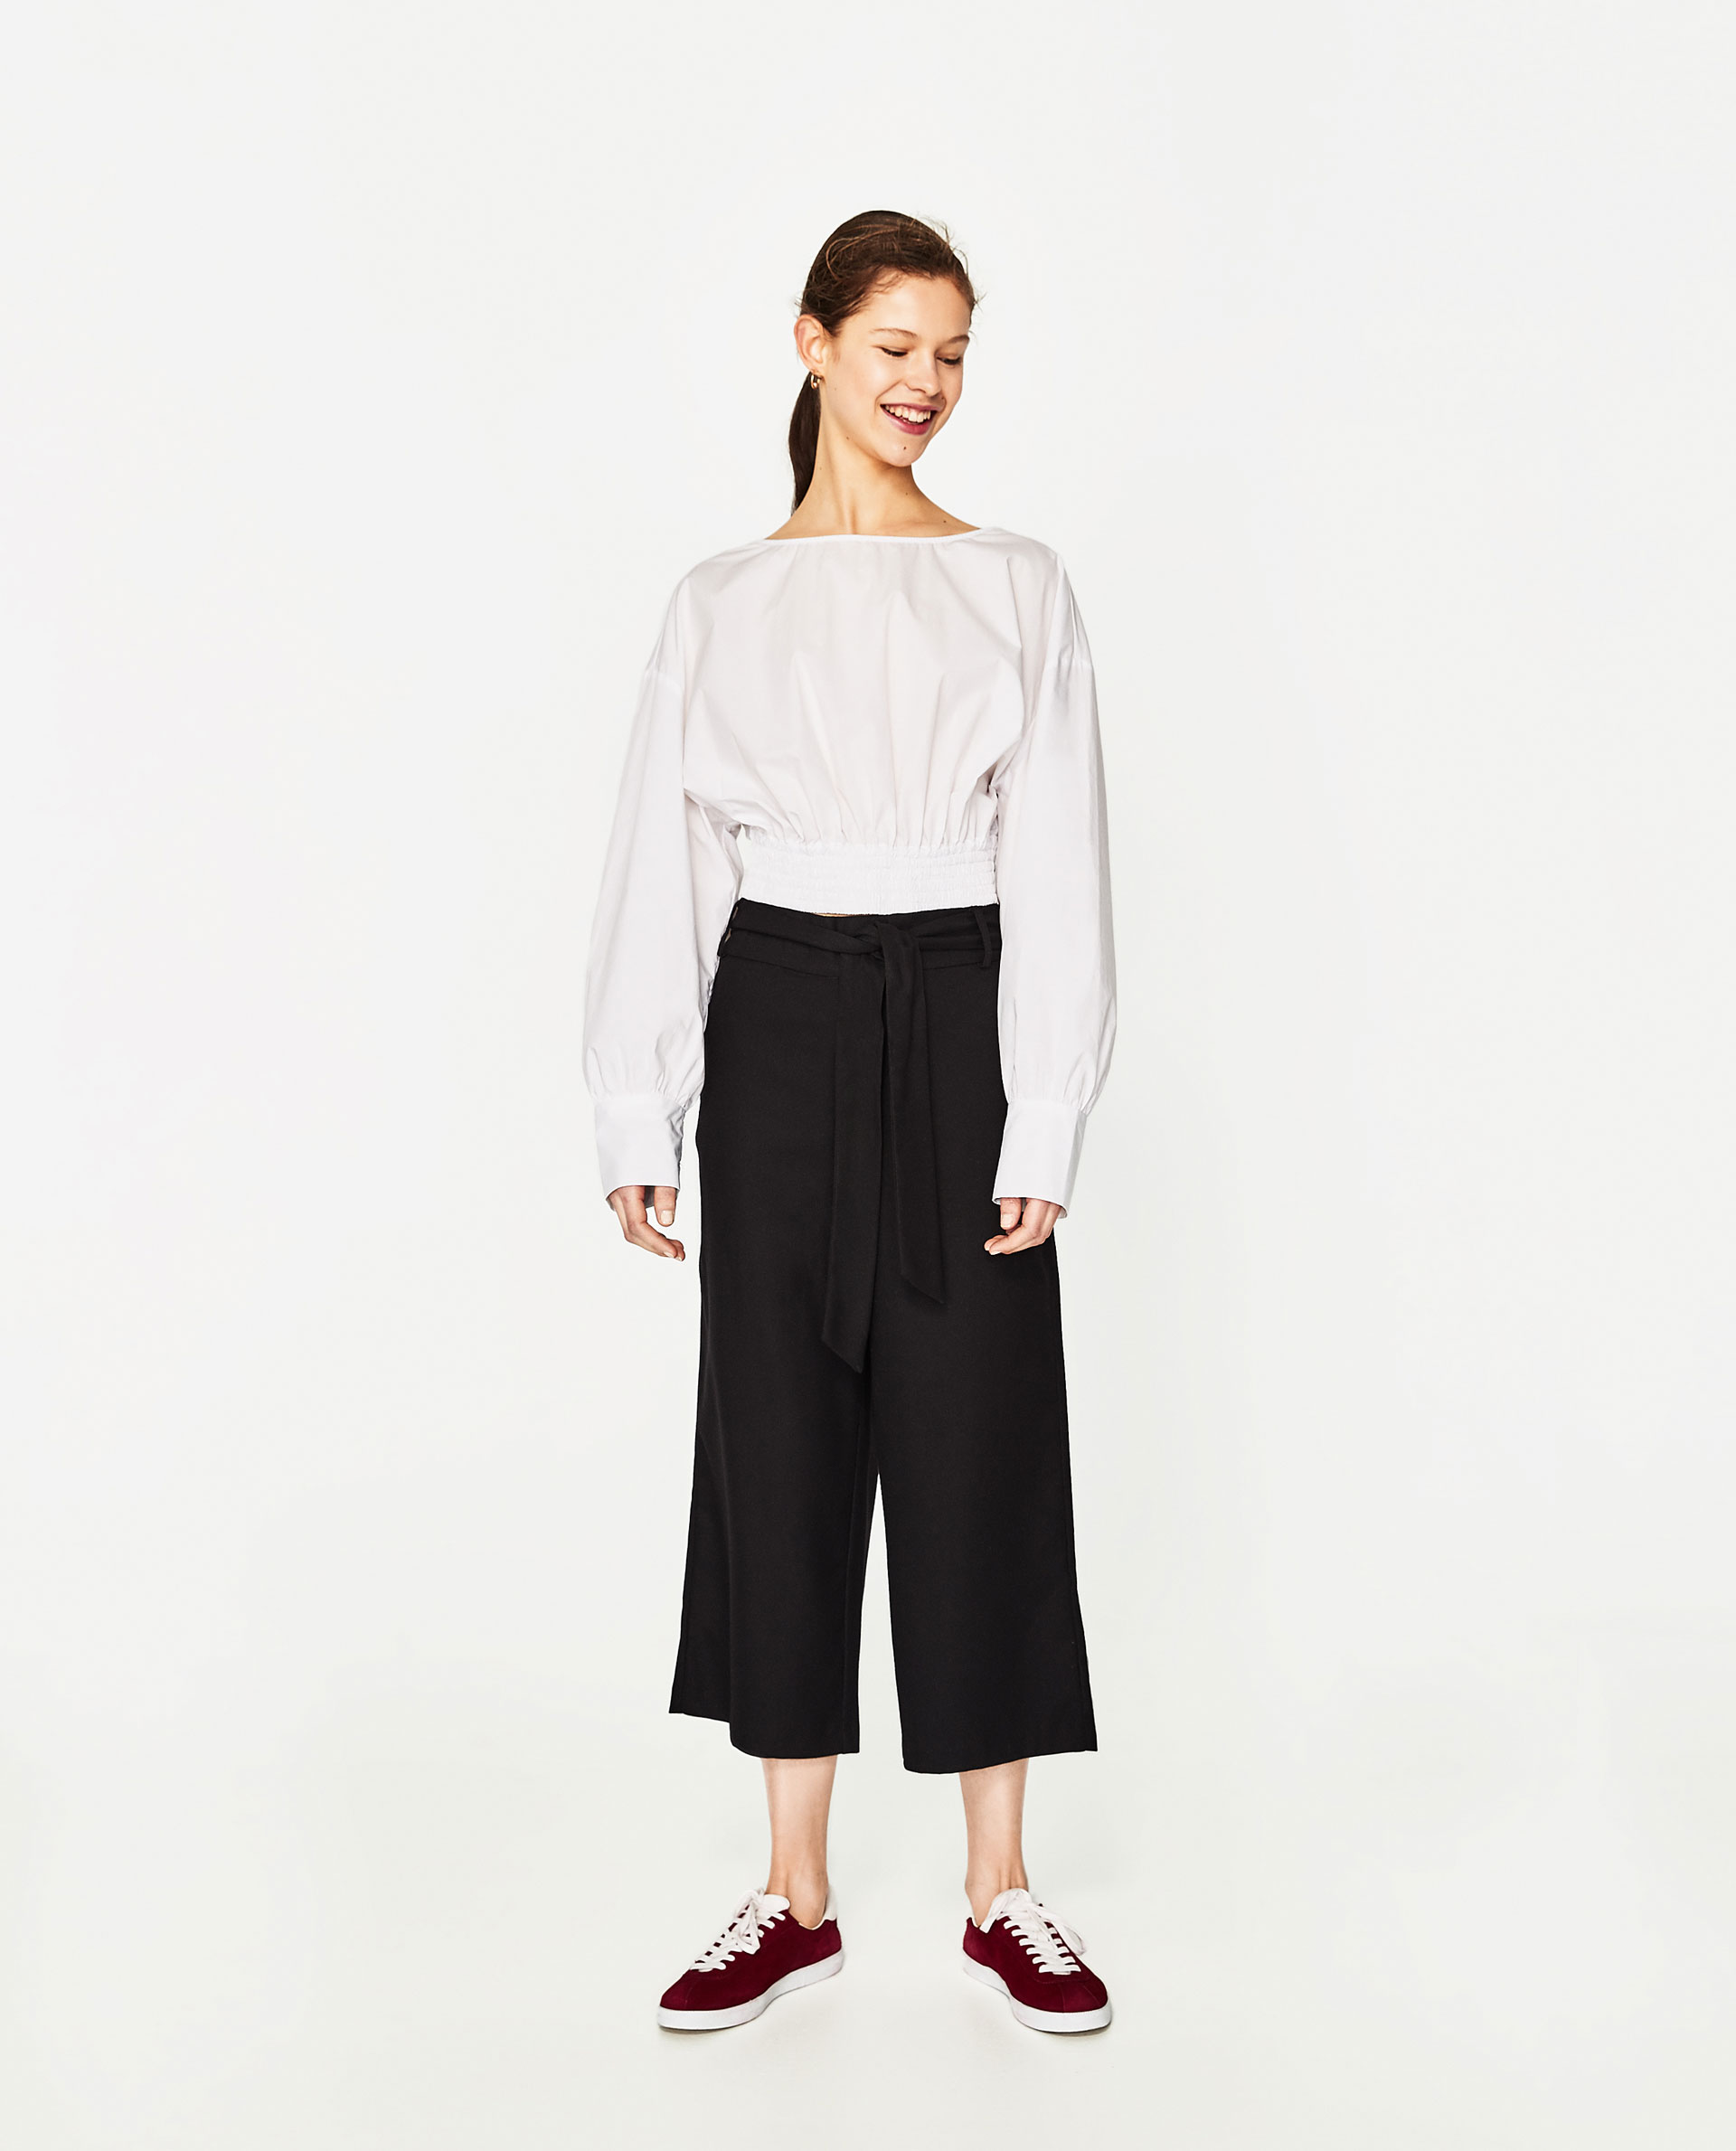 Cropped Trousers with Belt - Zara - £19.99